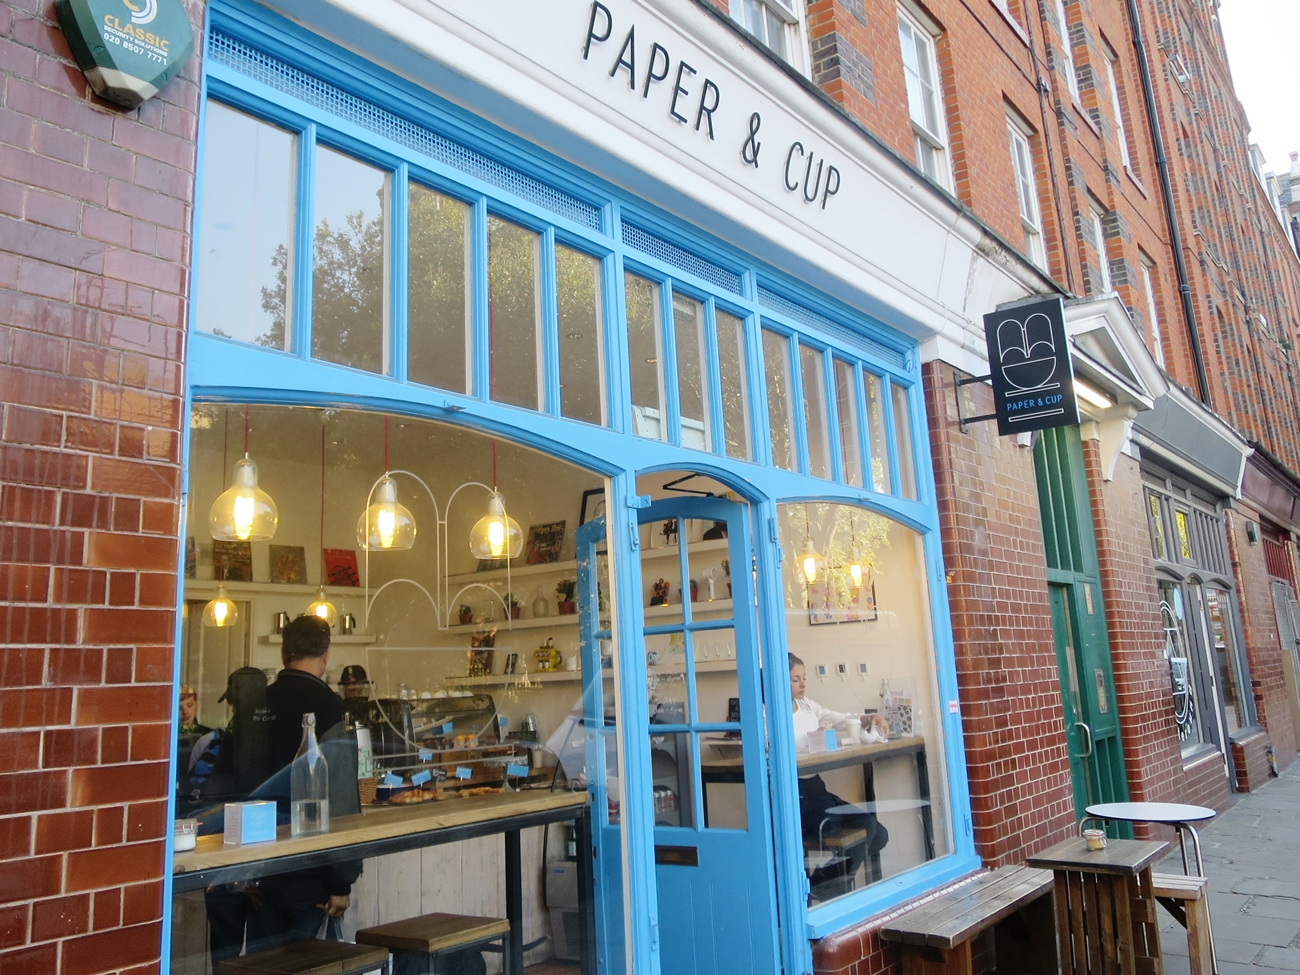 Paper & Cup London, England Shoreditch